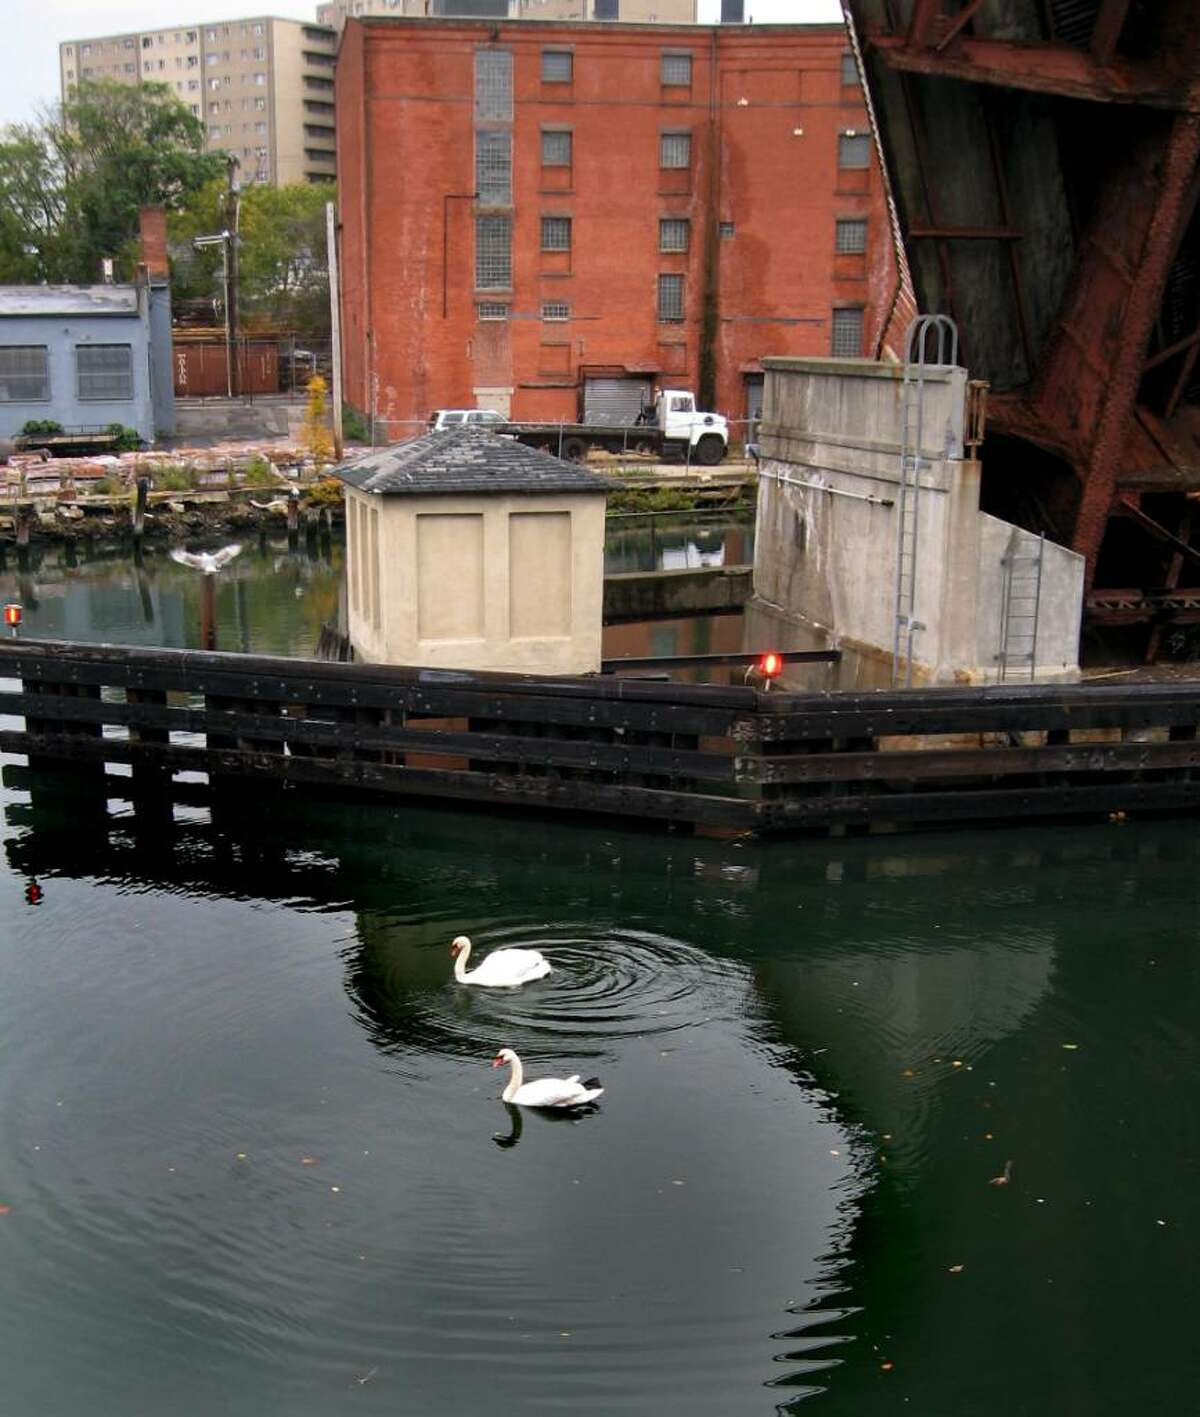 A pair of mute swans have taken up residence on the Pequonnock River under Bridgeport's decrepit Congress Street Bridge.